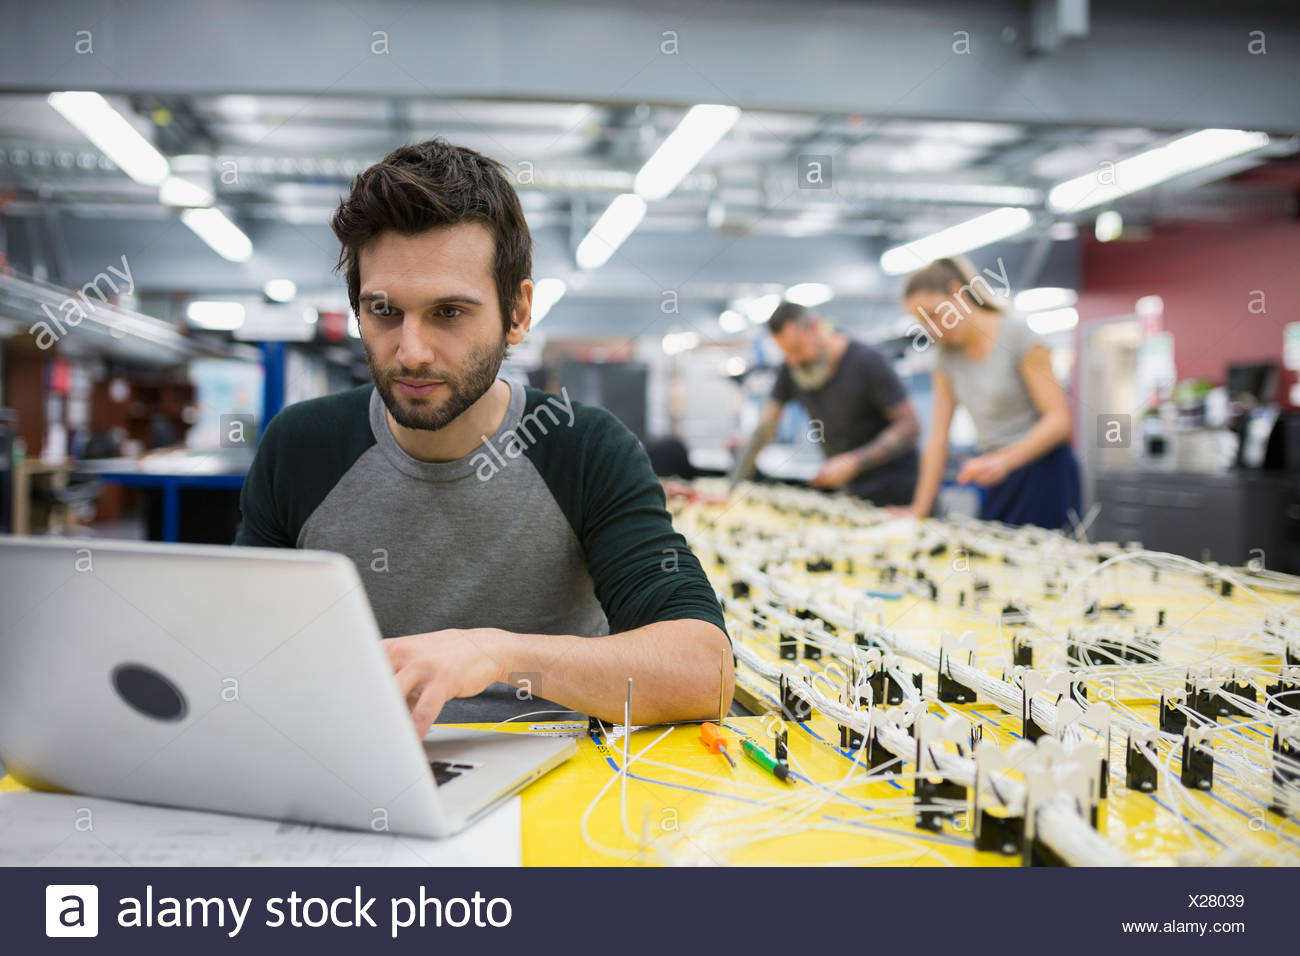 hight resolution of helicopter technician using laptop at wiring harness stock photo funny wiring harness helicopter technician using laptop